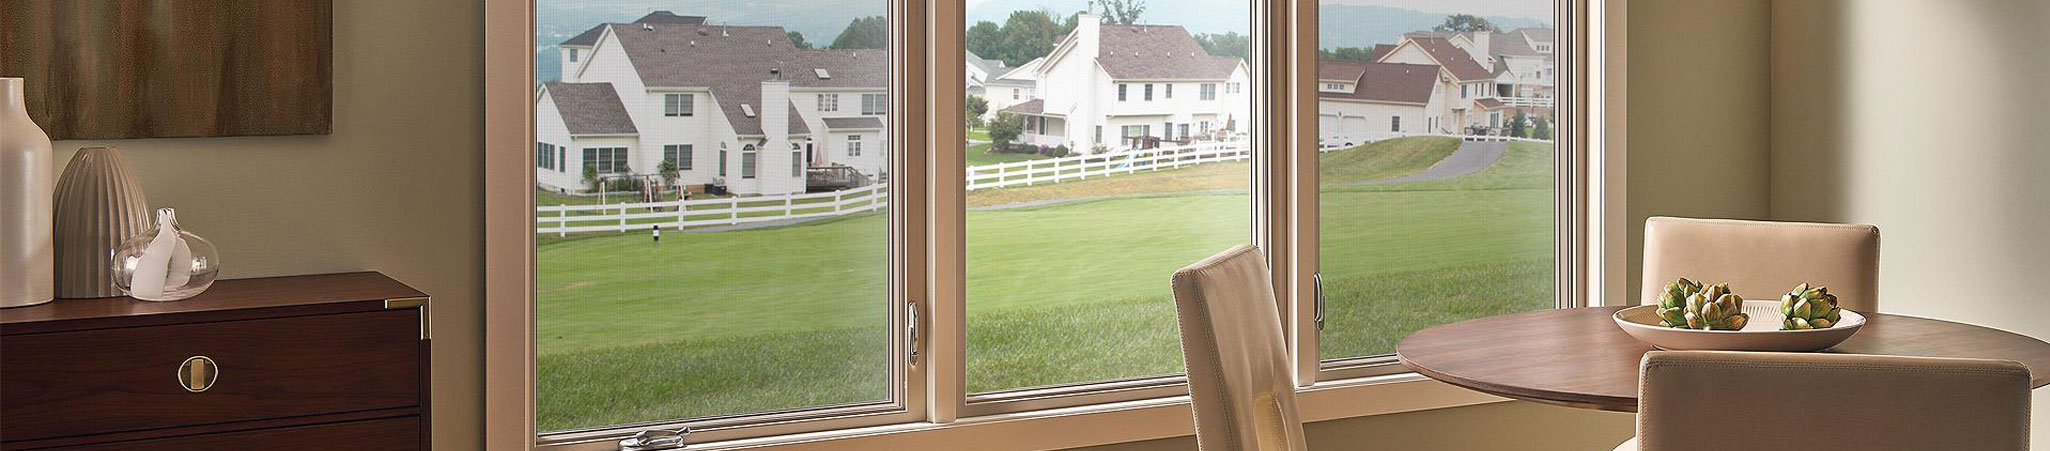 Modesto Door & Window | Milgard Windows